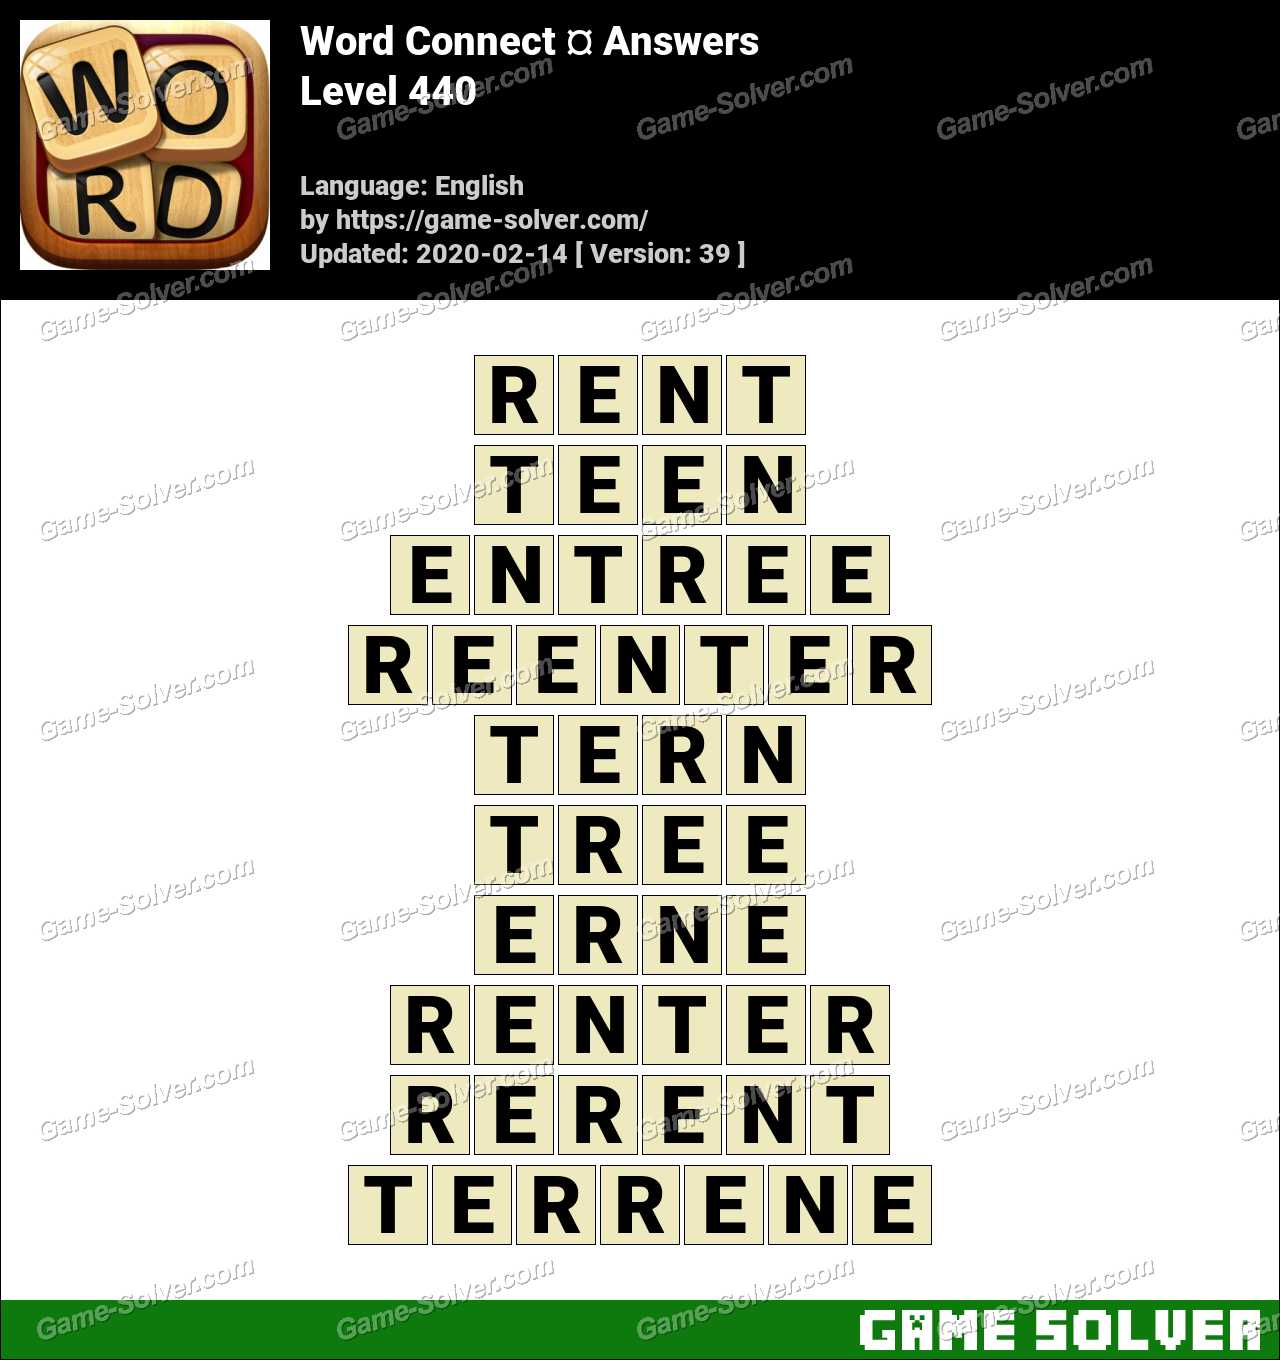 Word Connect Level 440 Answers